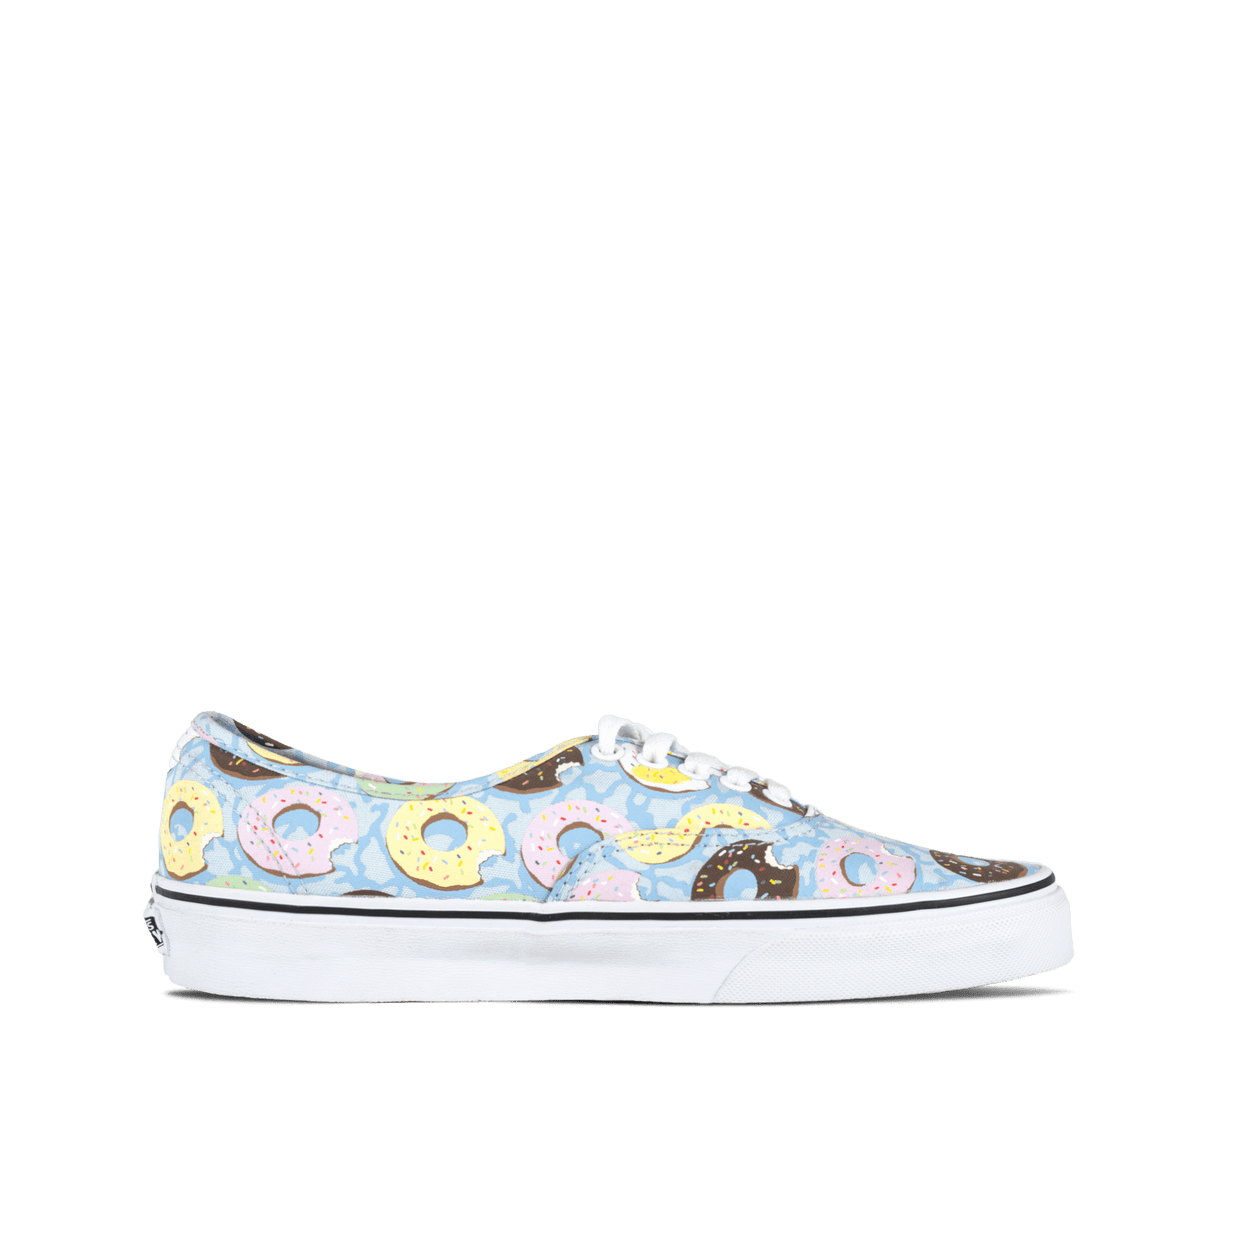 Authentic - Light Blue/Donuts